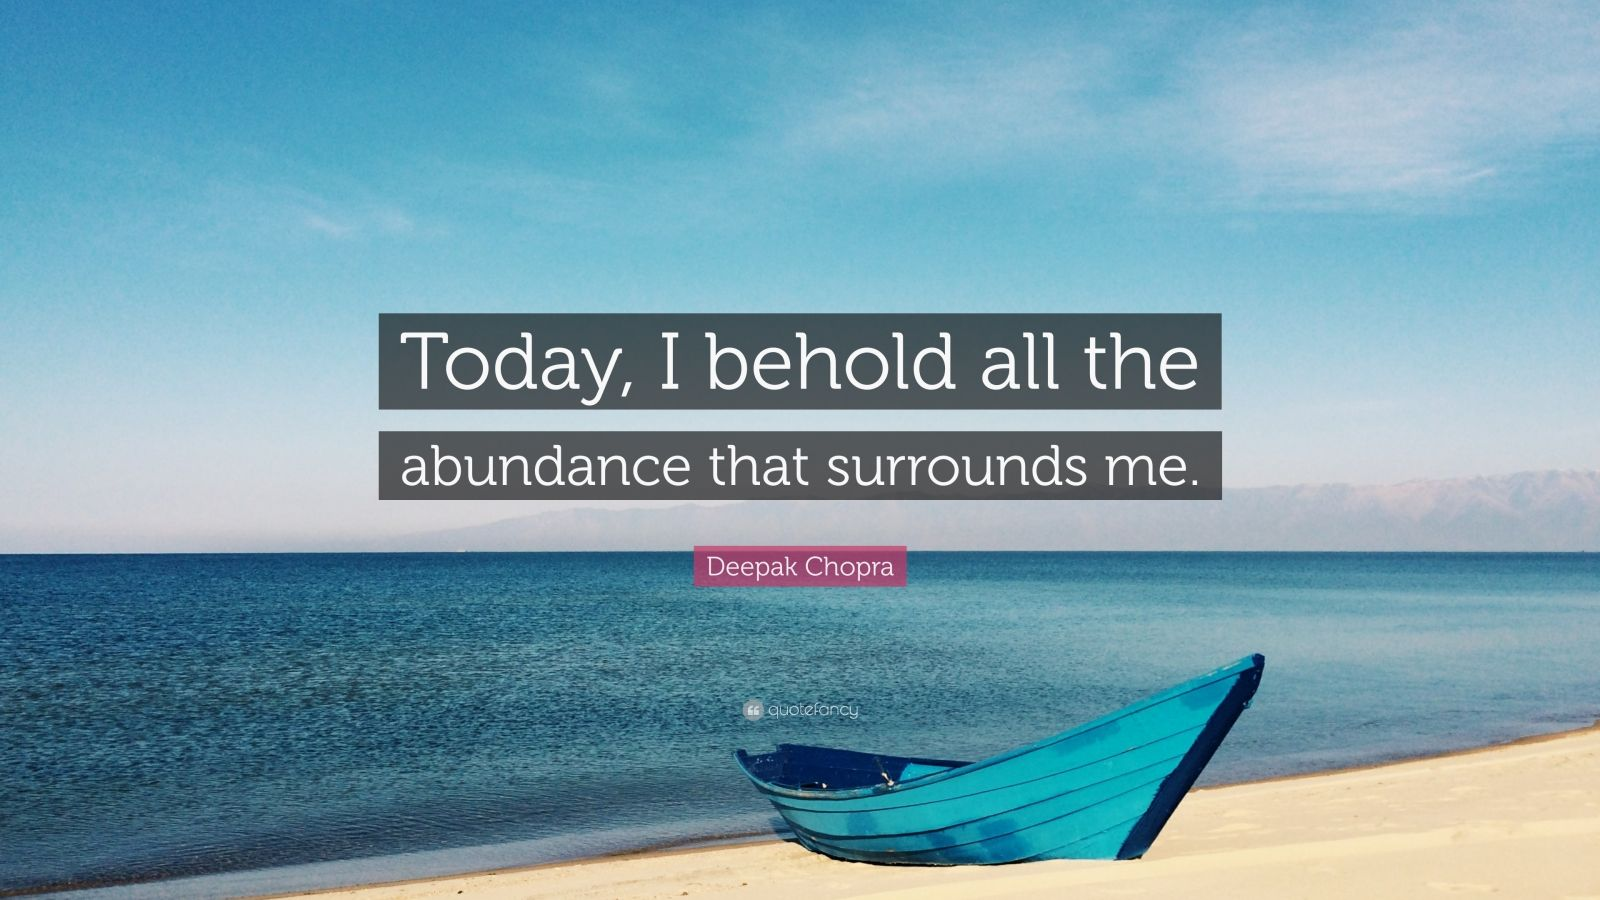 """Deepak Chopra Quote: """"Today, I behold all the abundance that surrounds me."""""""